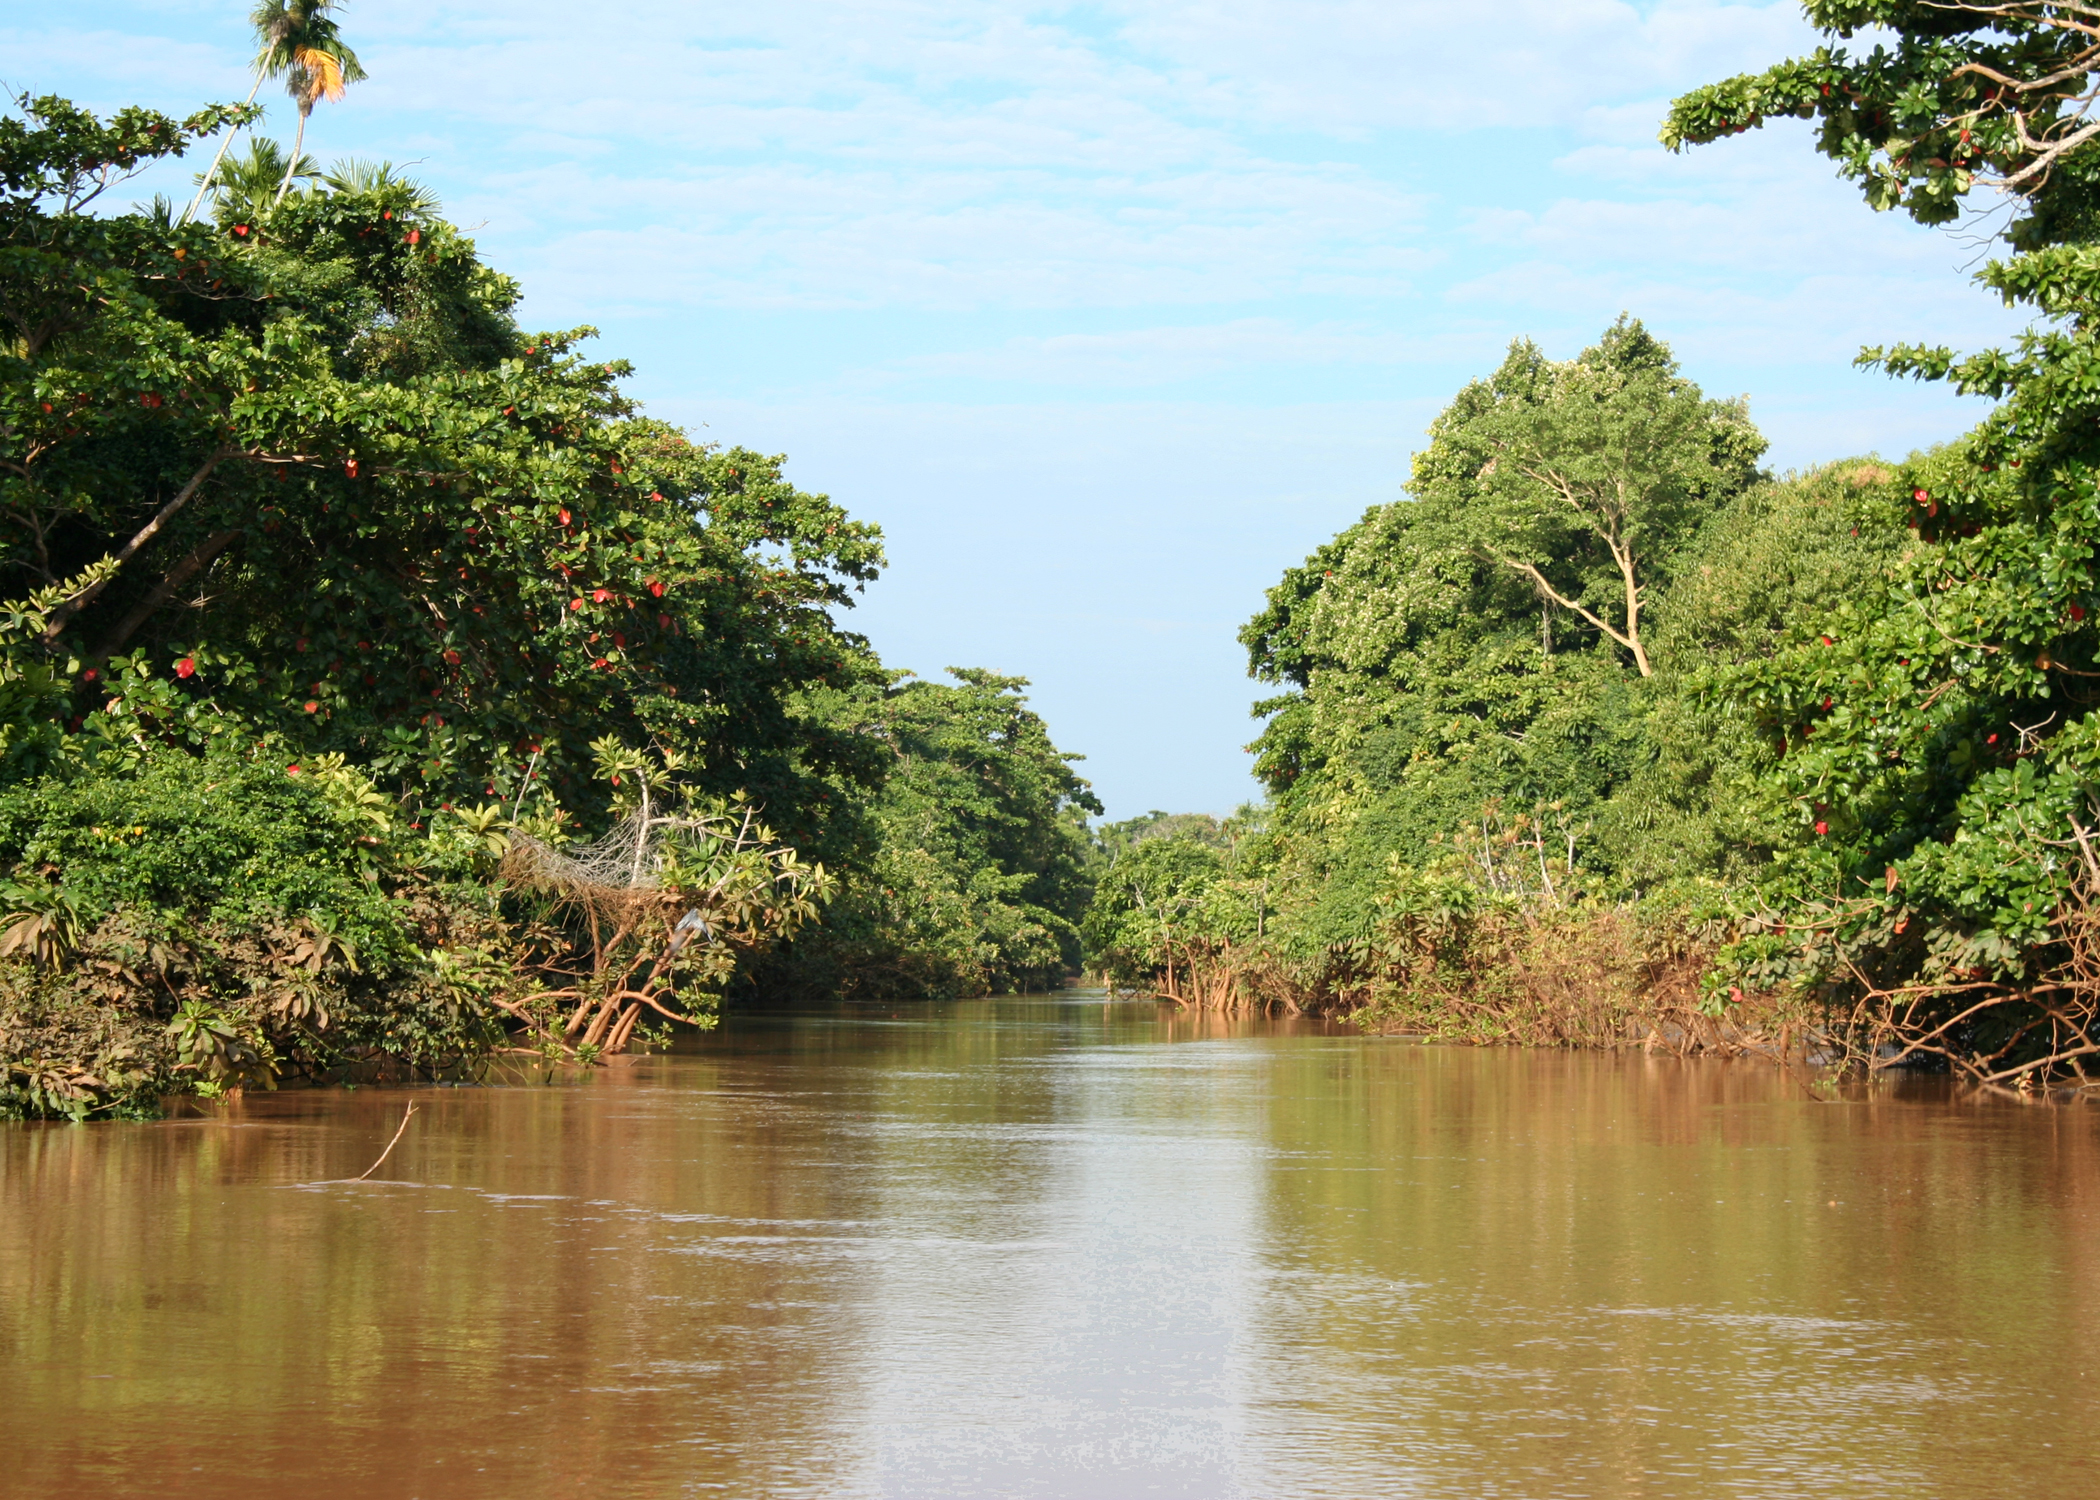 Climate change may boost rain in Kenyan river basin – scientists